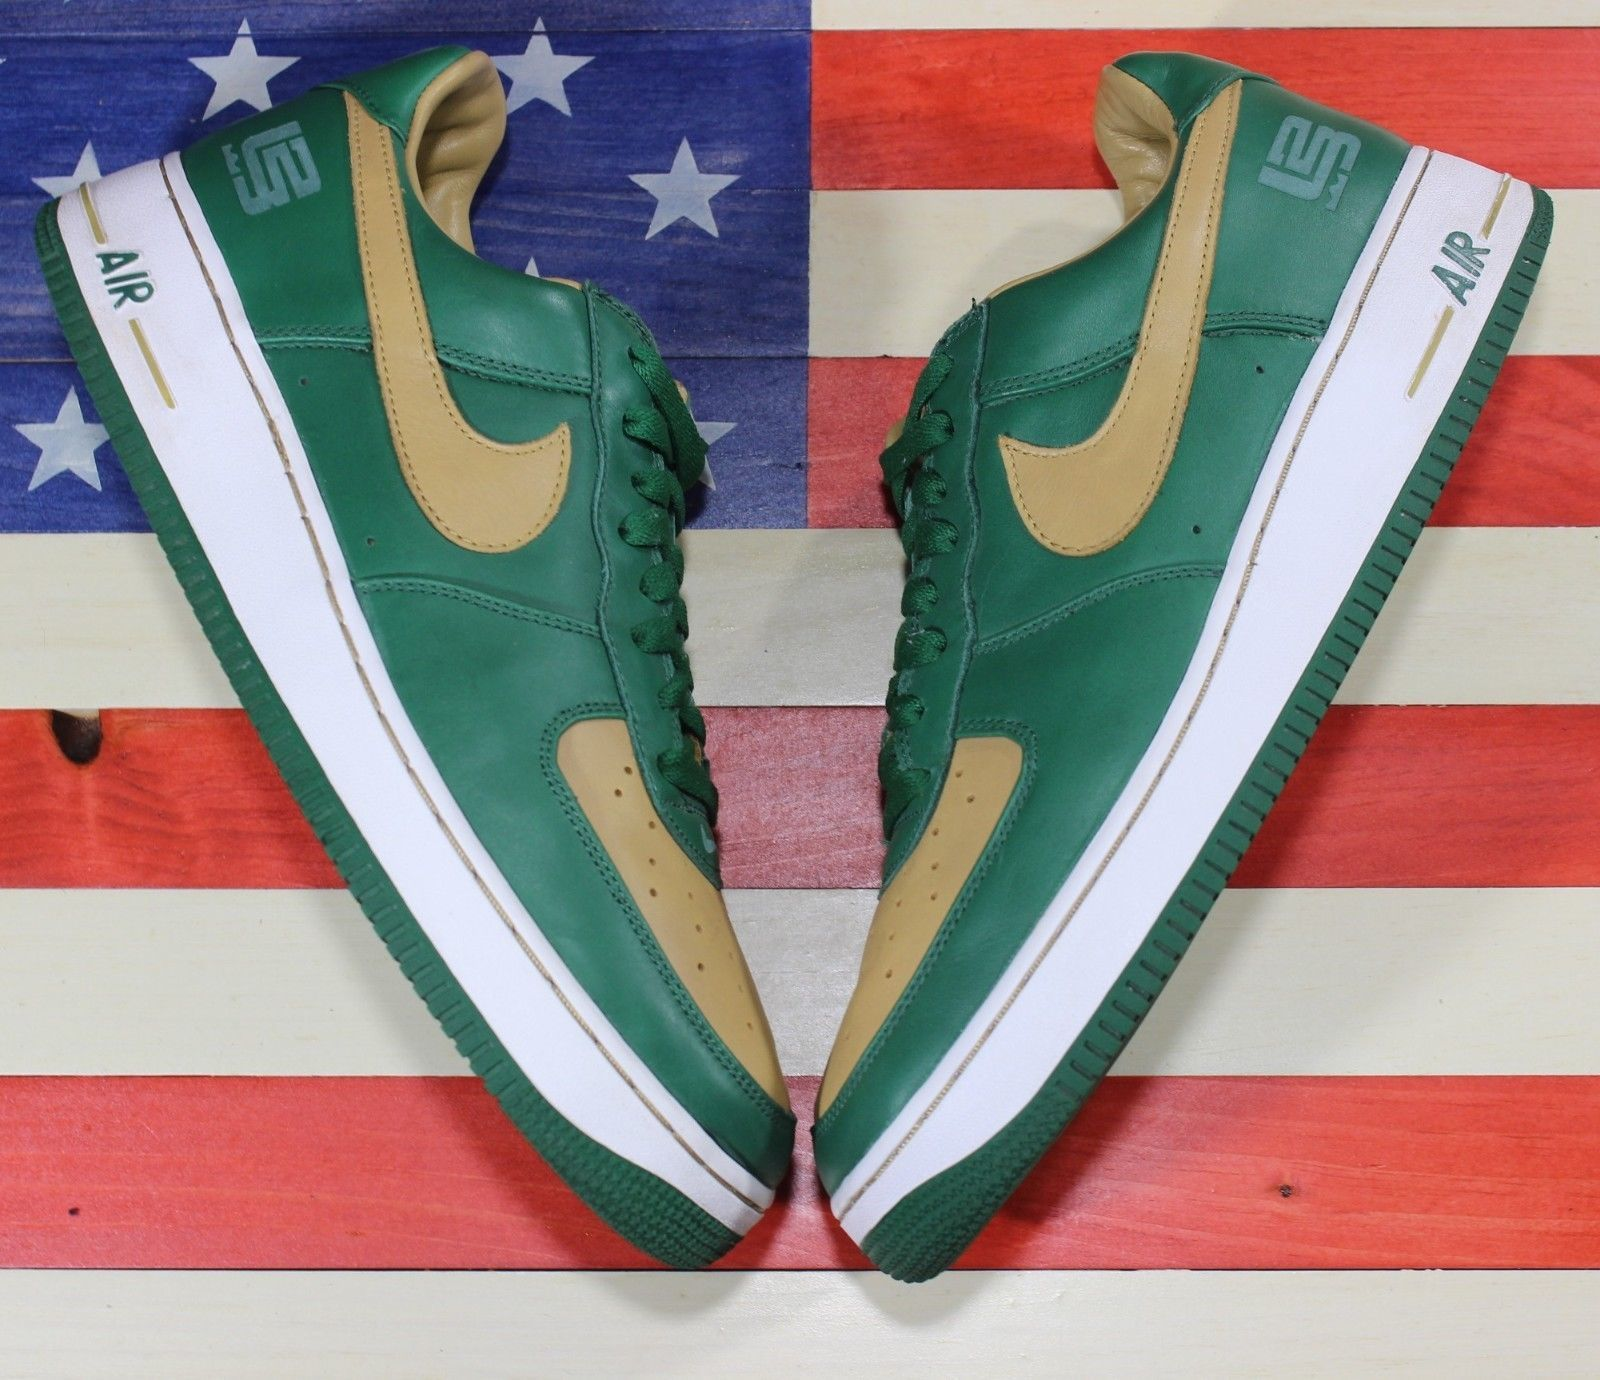 on sale b097f 5e4c5 Nike AIR FORCE 1 Leather PREMIUM Lebron Green Gold SVSM Shoes 309063-371